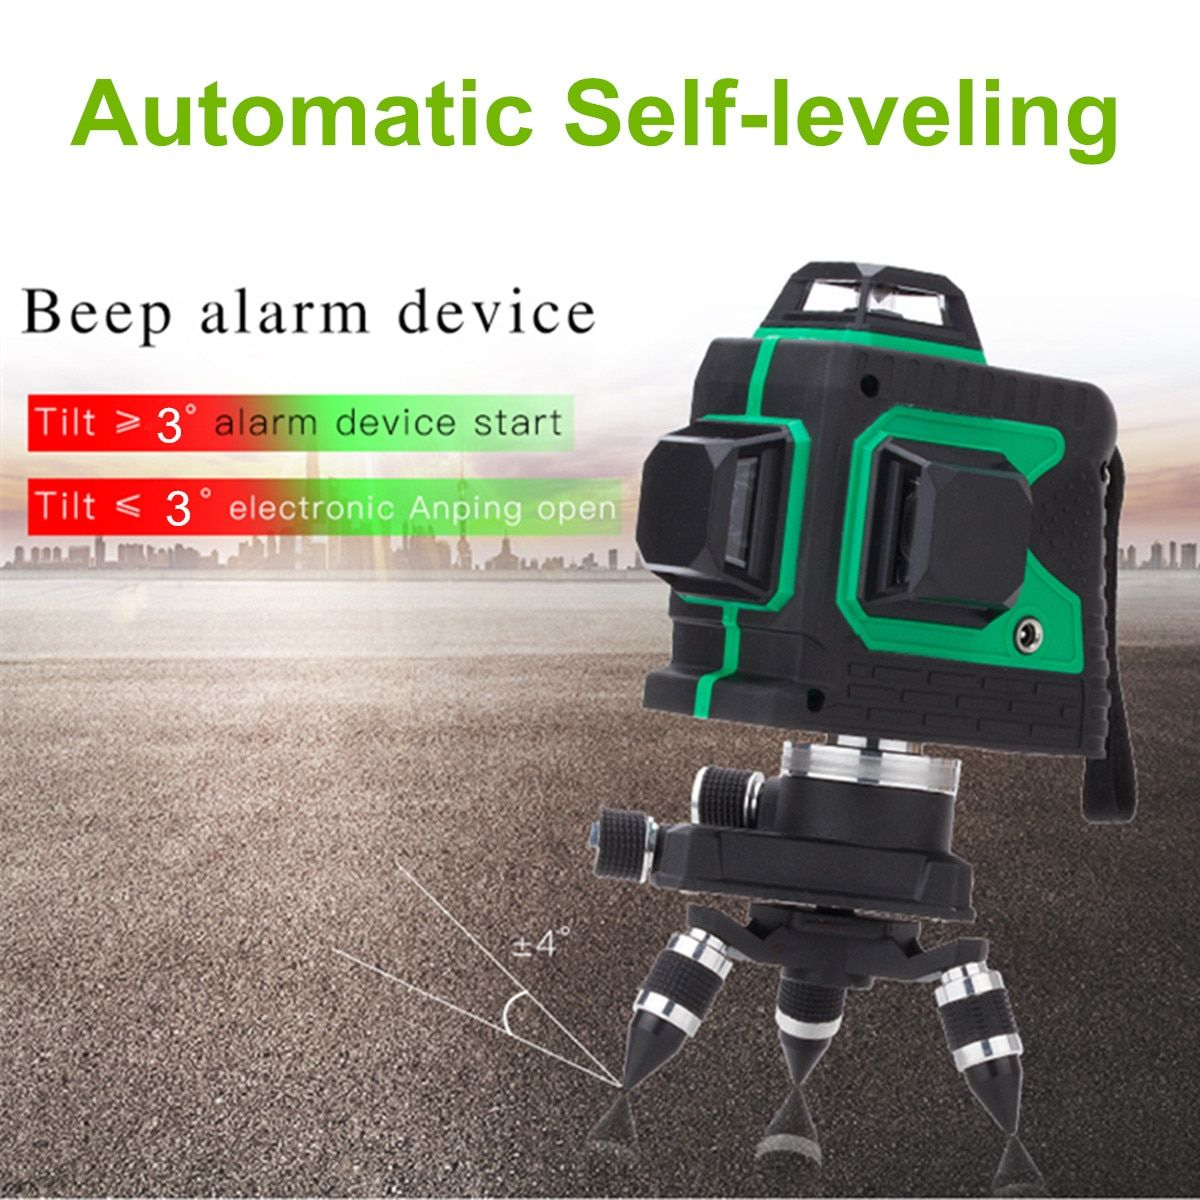 3D 12 Line 360 Degree Laser Plumb-point Function Auto Self Leveling Vertical Horizontal Level Cross GREEN with Tripod Waterproof